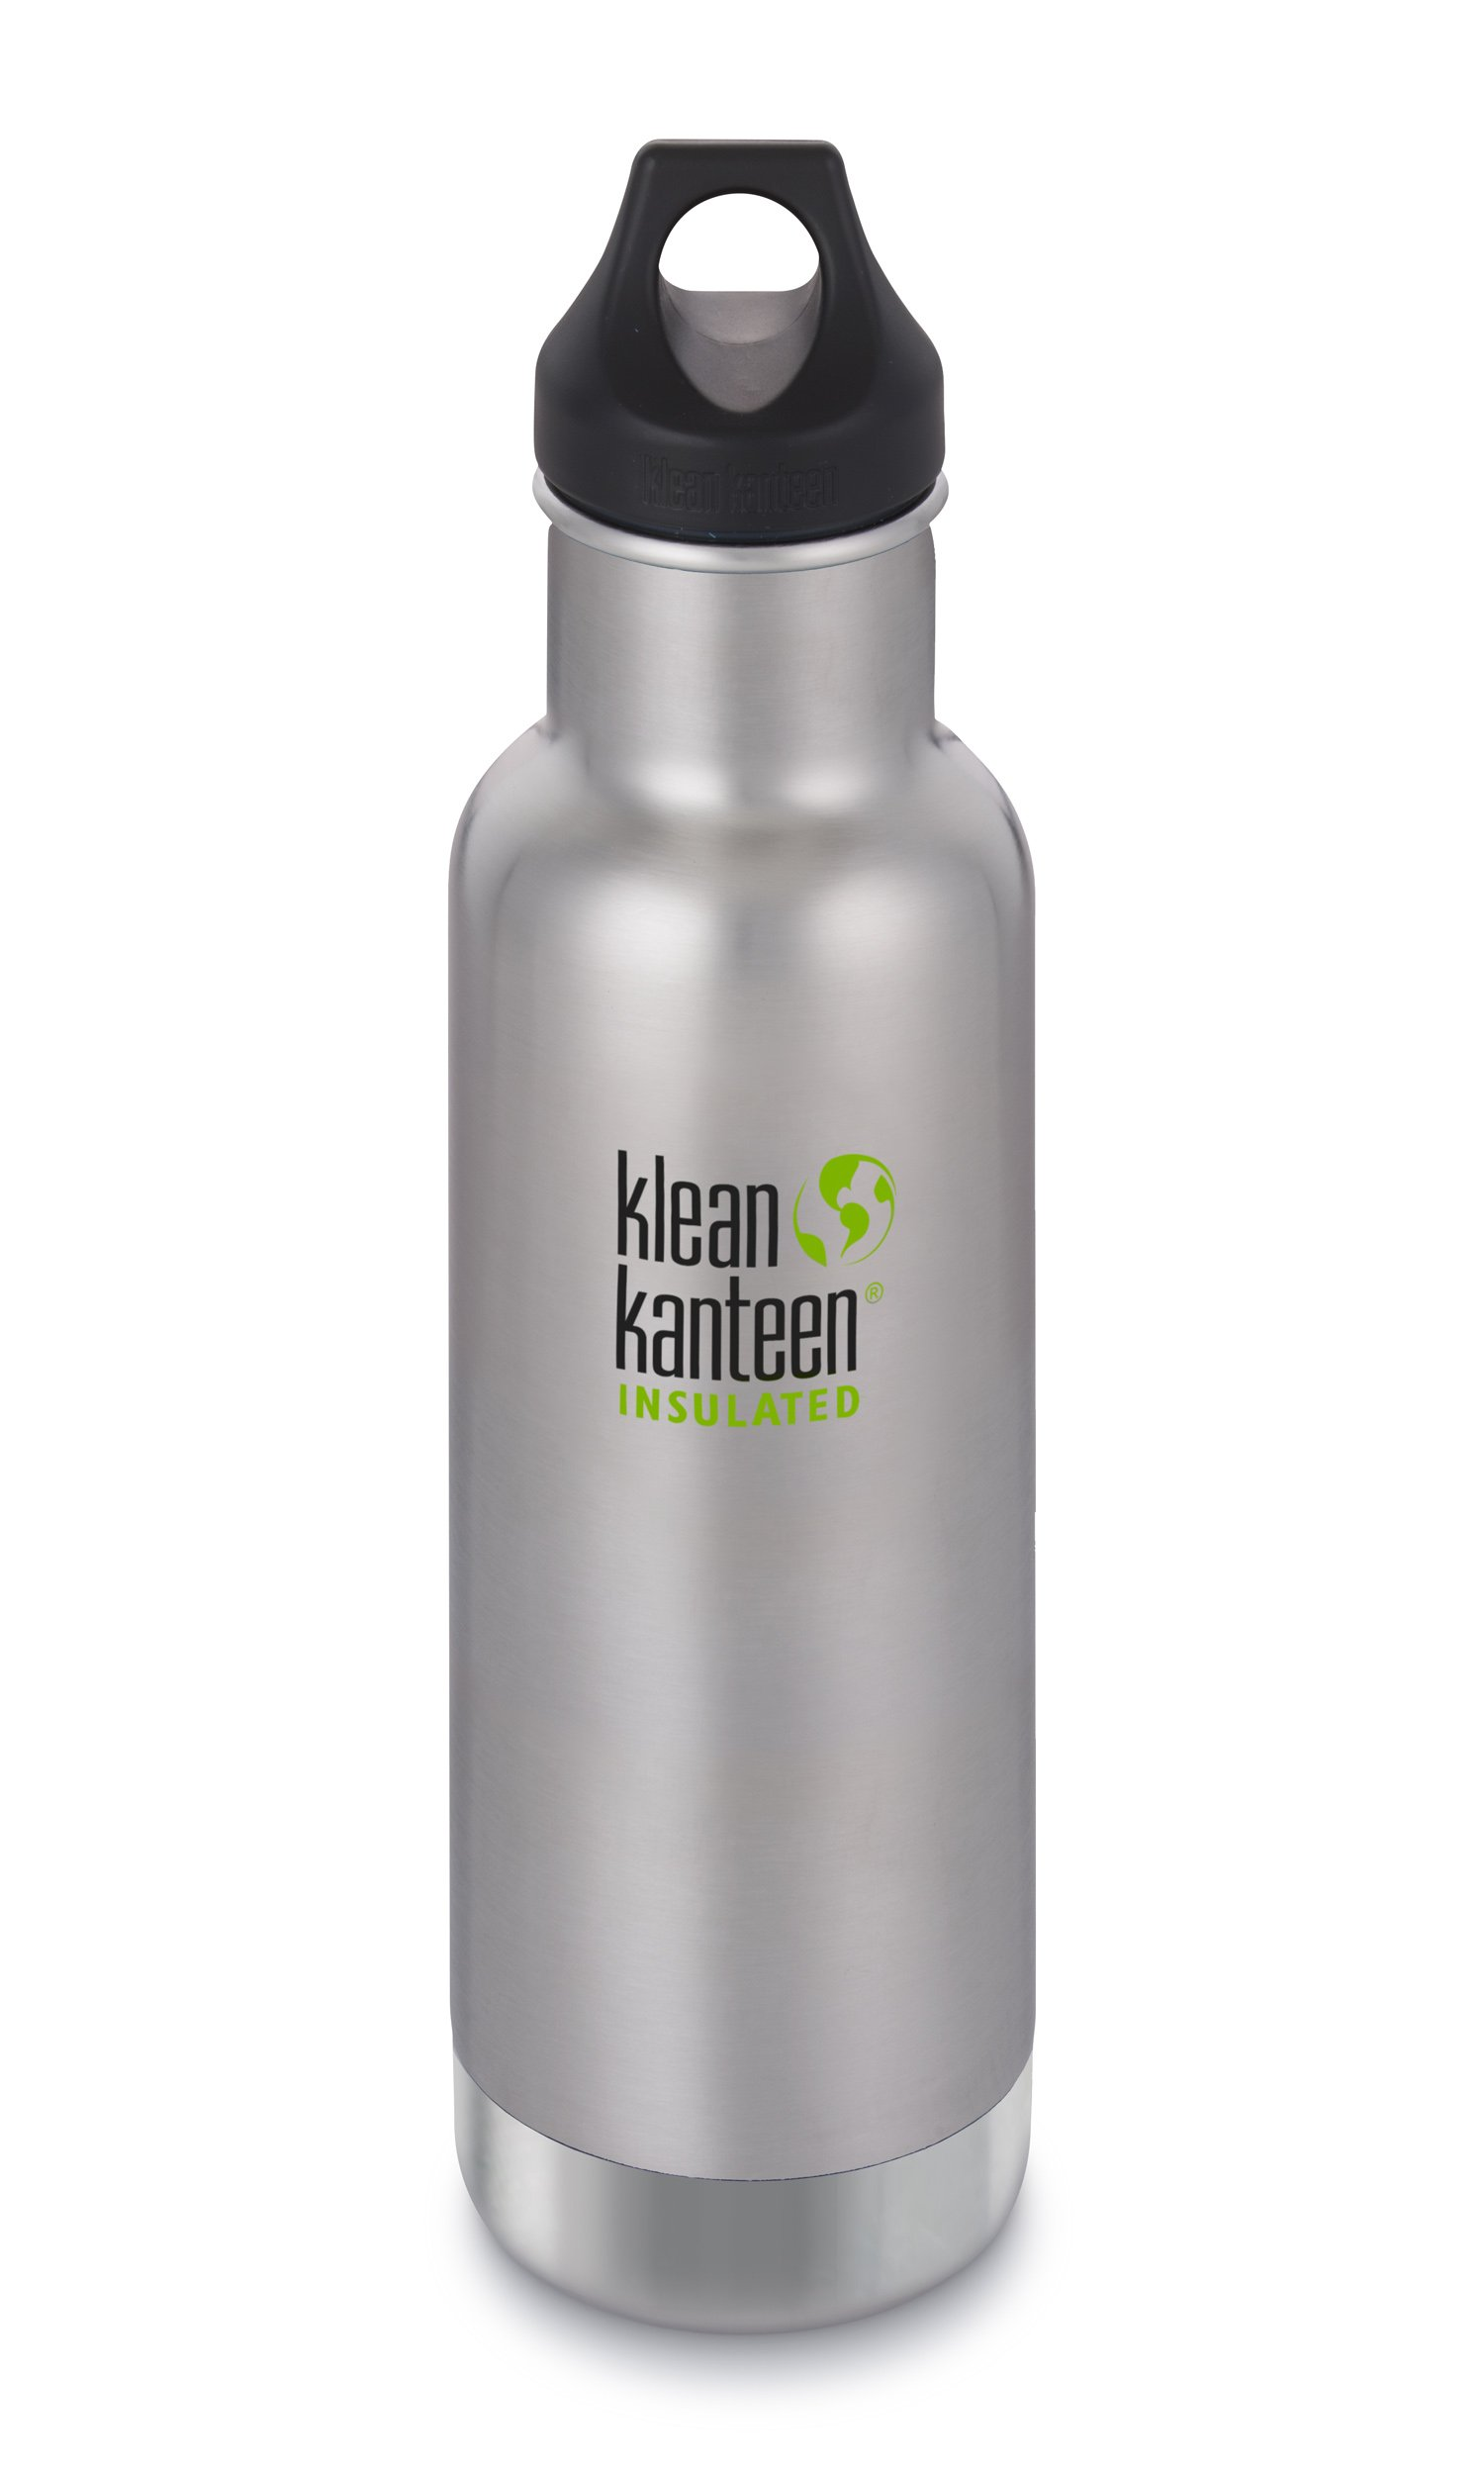 Klean Kanteen Classic Insulated Stainless Steel Water Bottle with Leak Proof Loop Cap - 20oz - Brushed Stainless